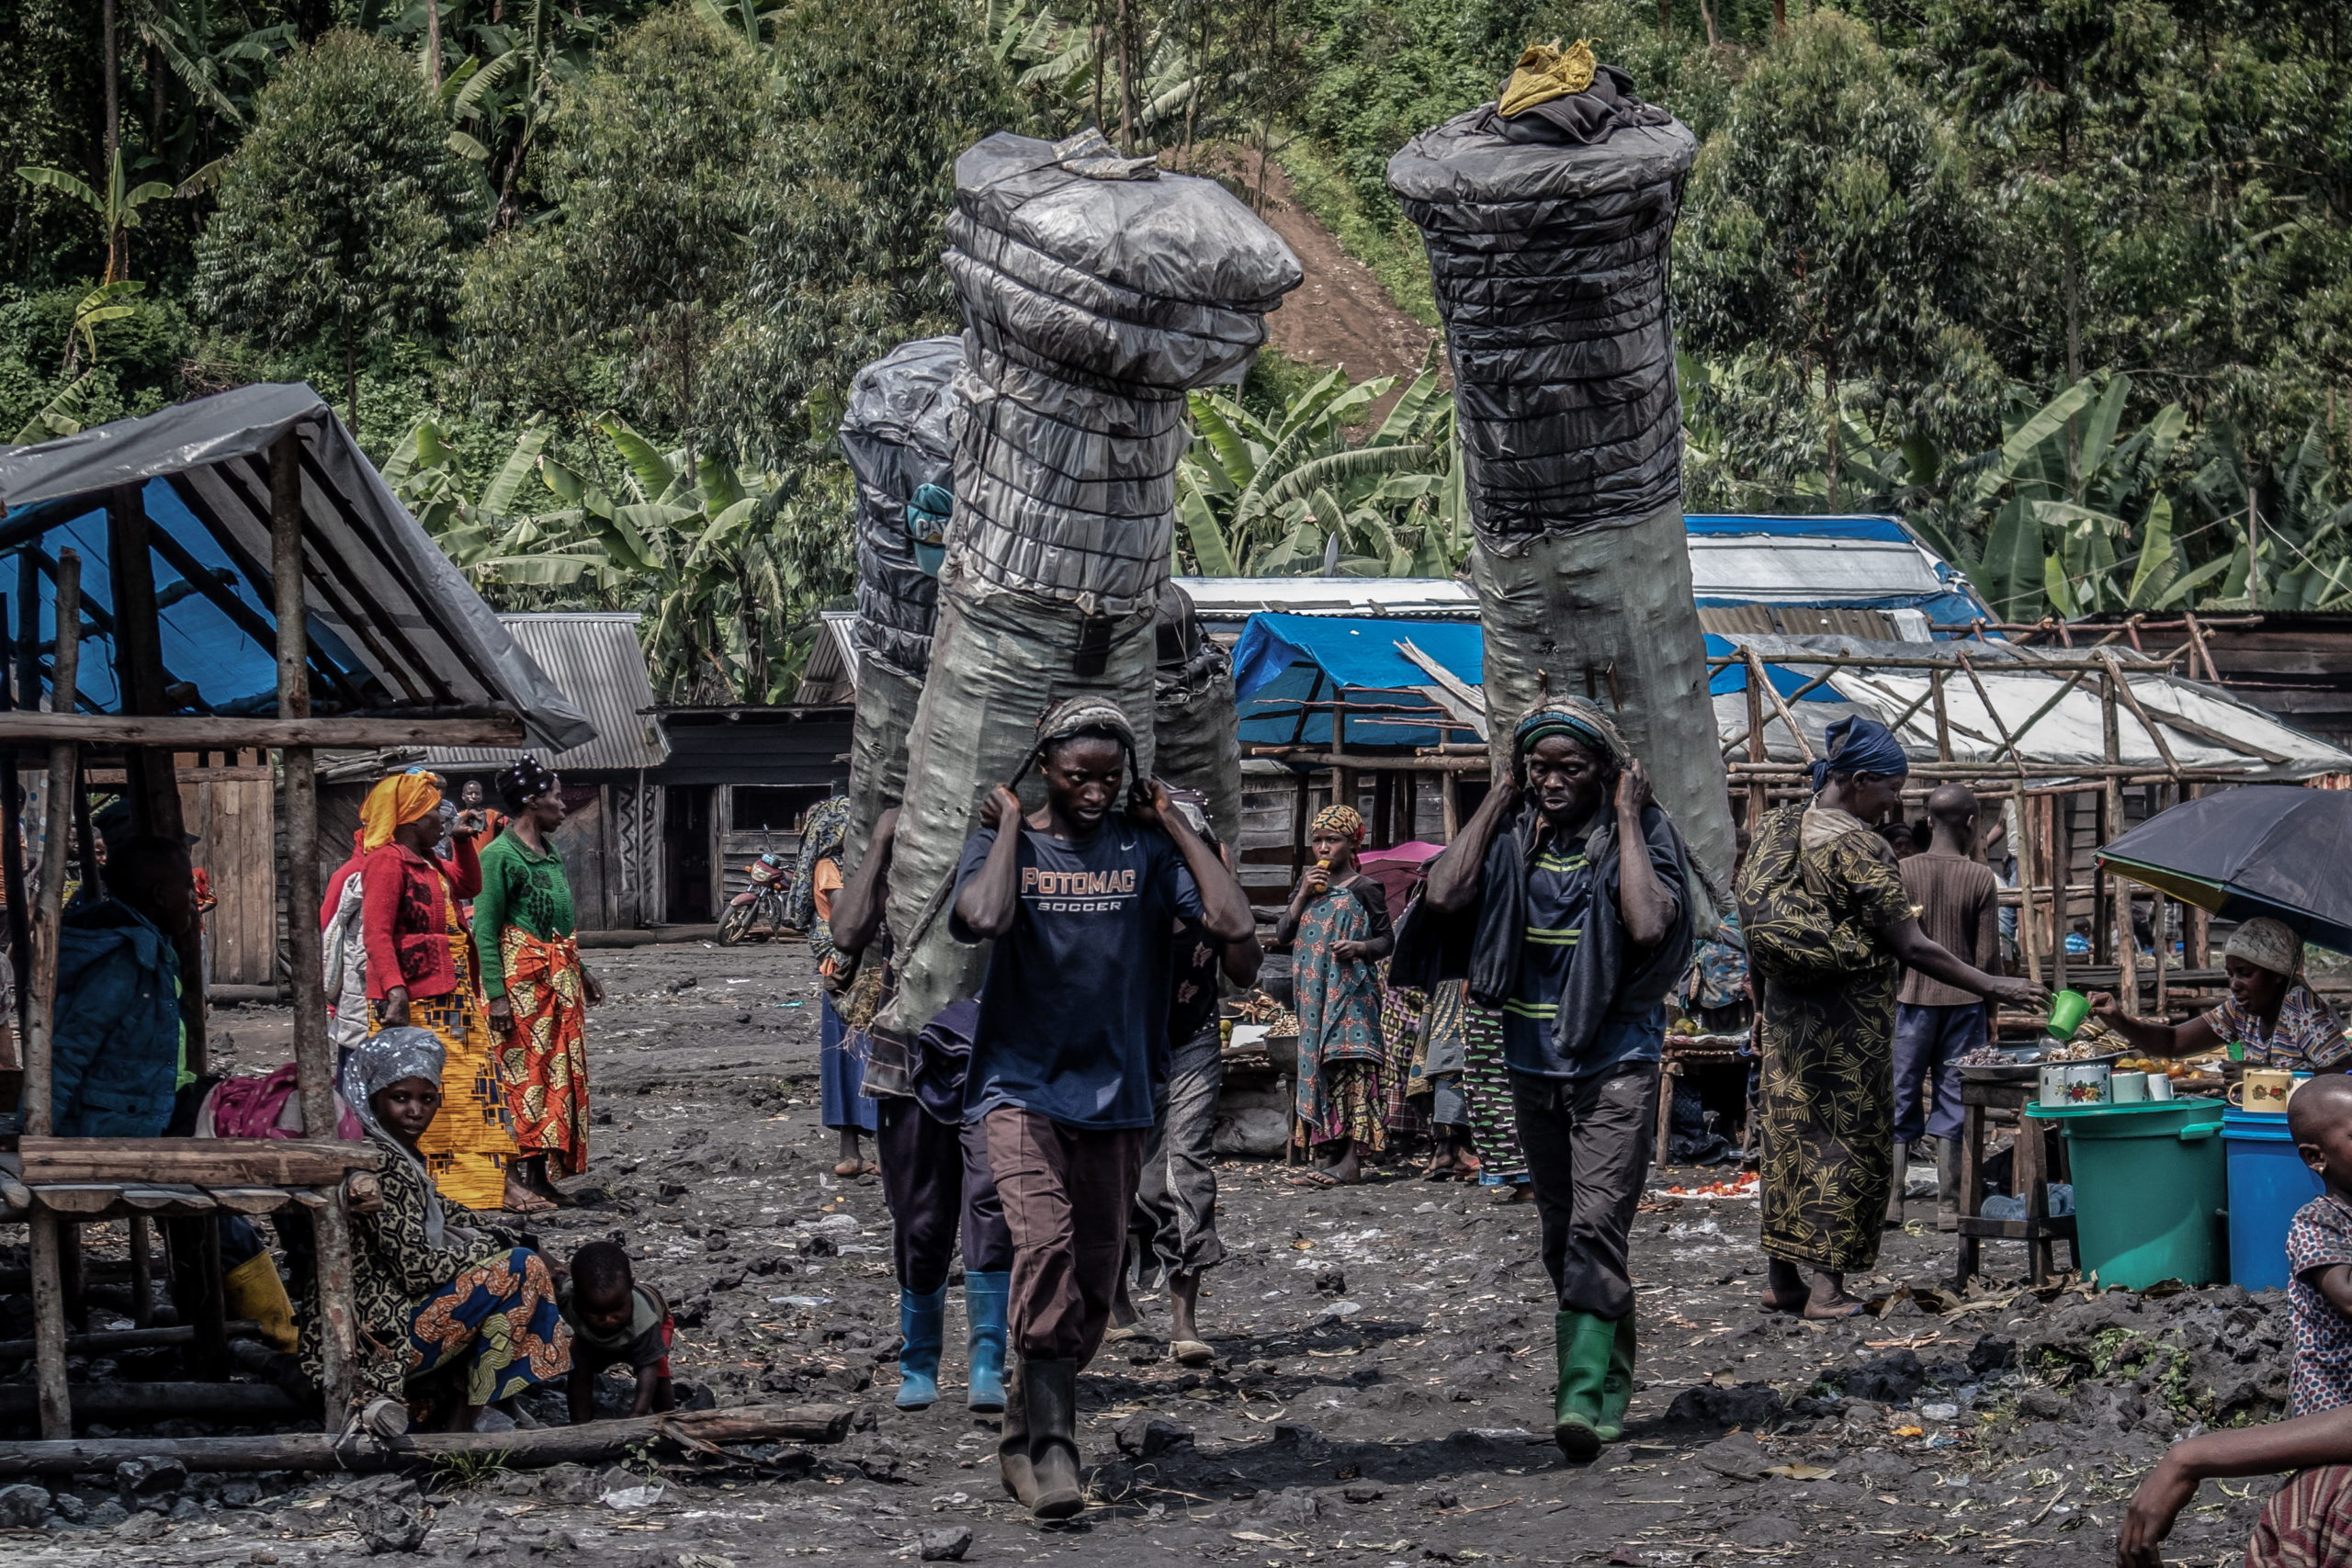 Virunga National Park, DRC, December 2020. Men transport charcoal at the roadside market of Kulupango on the edge of Virunga National Park just north of the eastern Congolese city of Goma. Most of the charcoal bound for Goma passes through Kulupango market. © Guerchom Ndebo for Fondation Carmignac